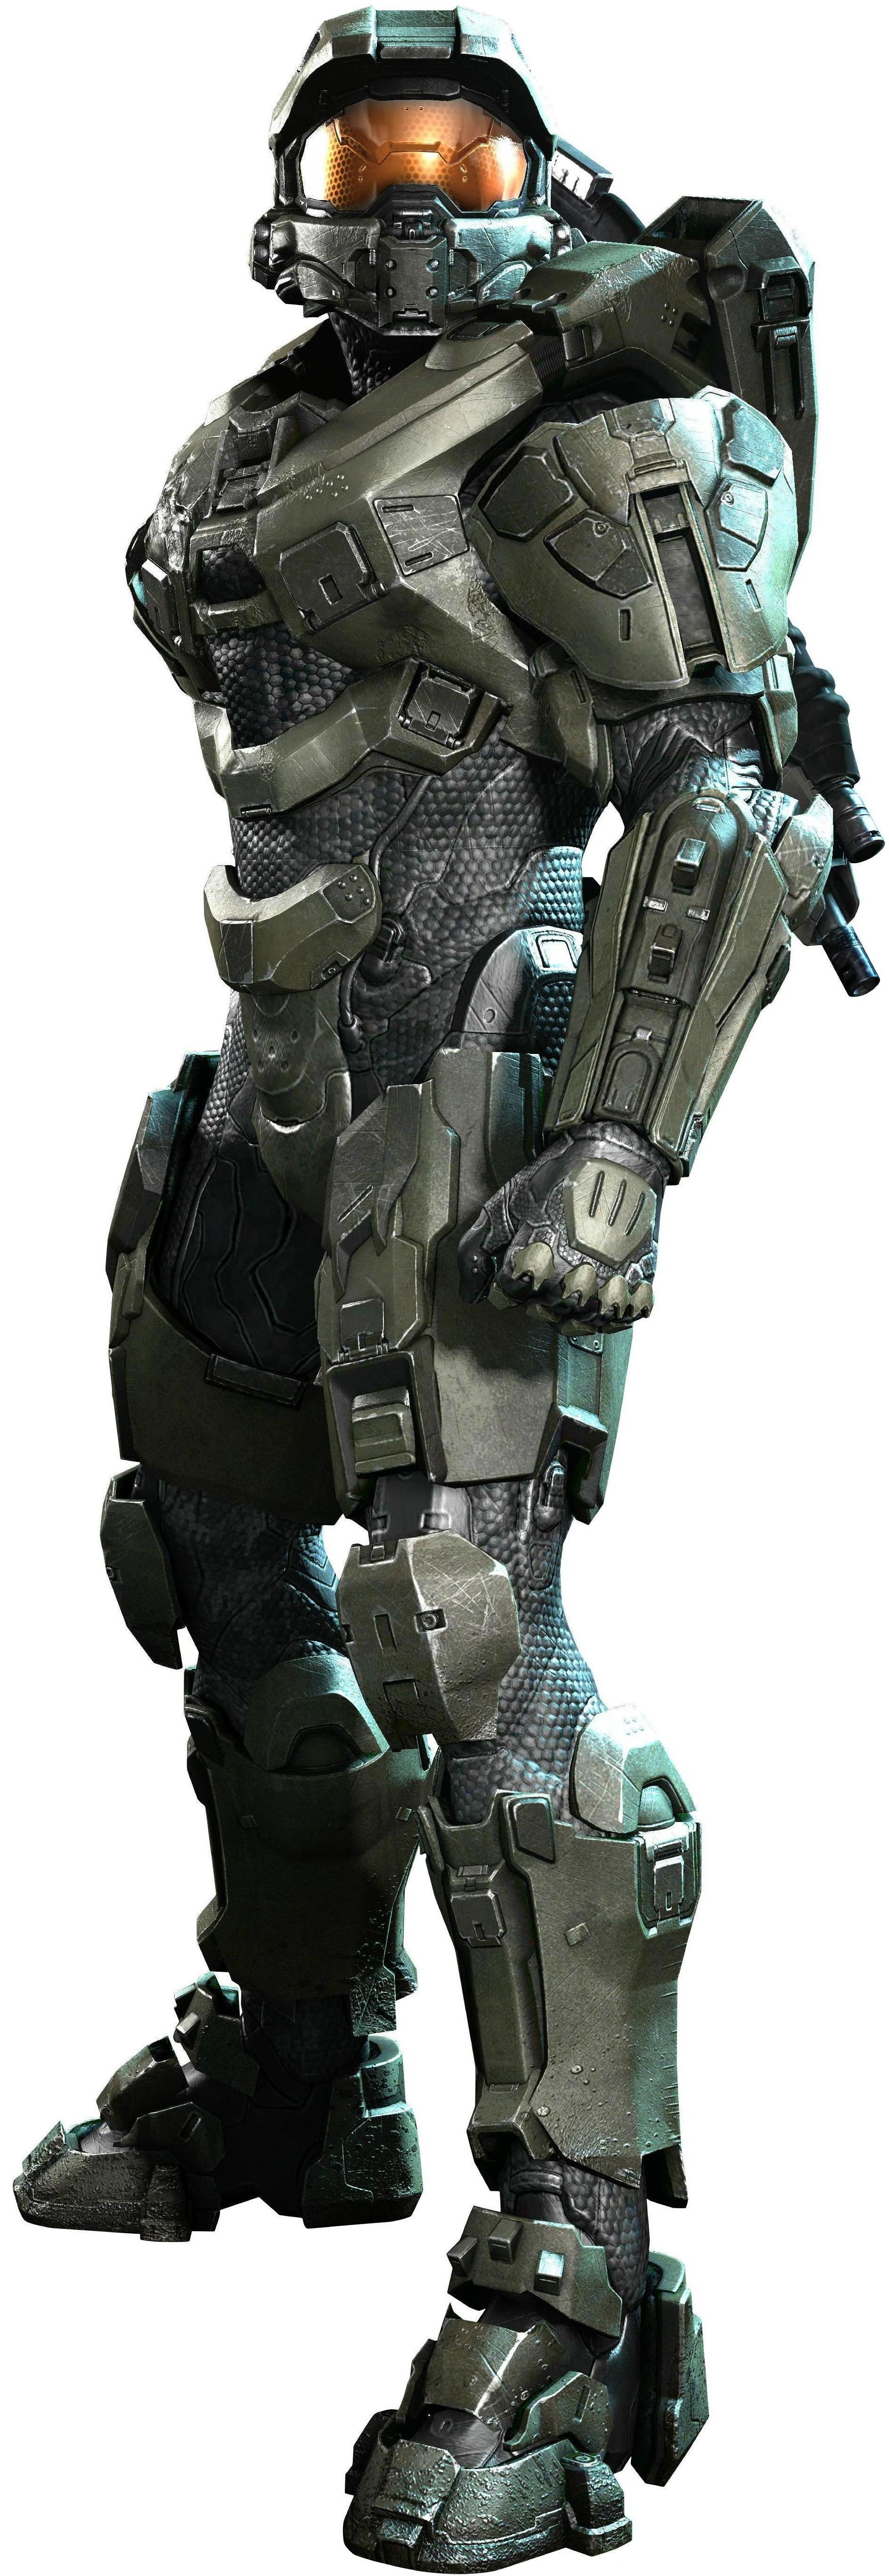 Halo 4 Master Chief John 117 By Lopez The Heavy D5lunbo Png 1 887 5 470 Pixels Halo Game Halo Armor Halo 4